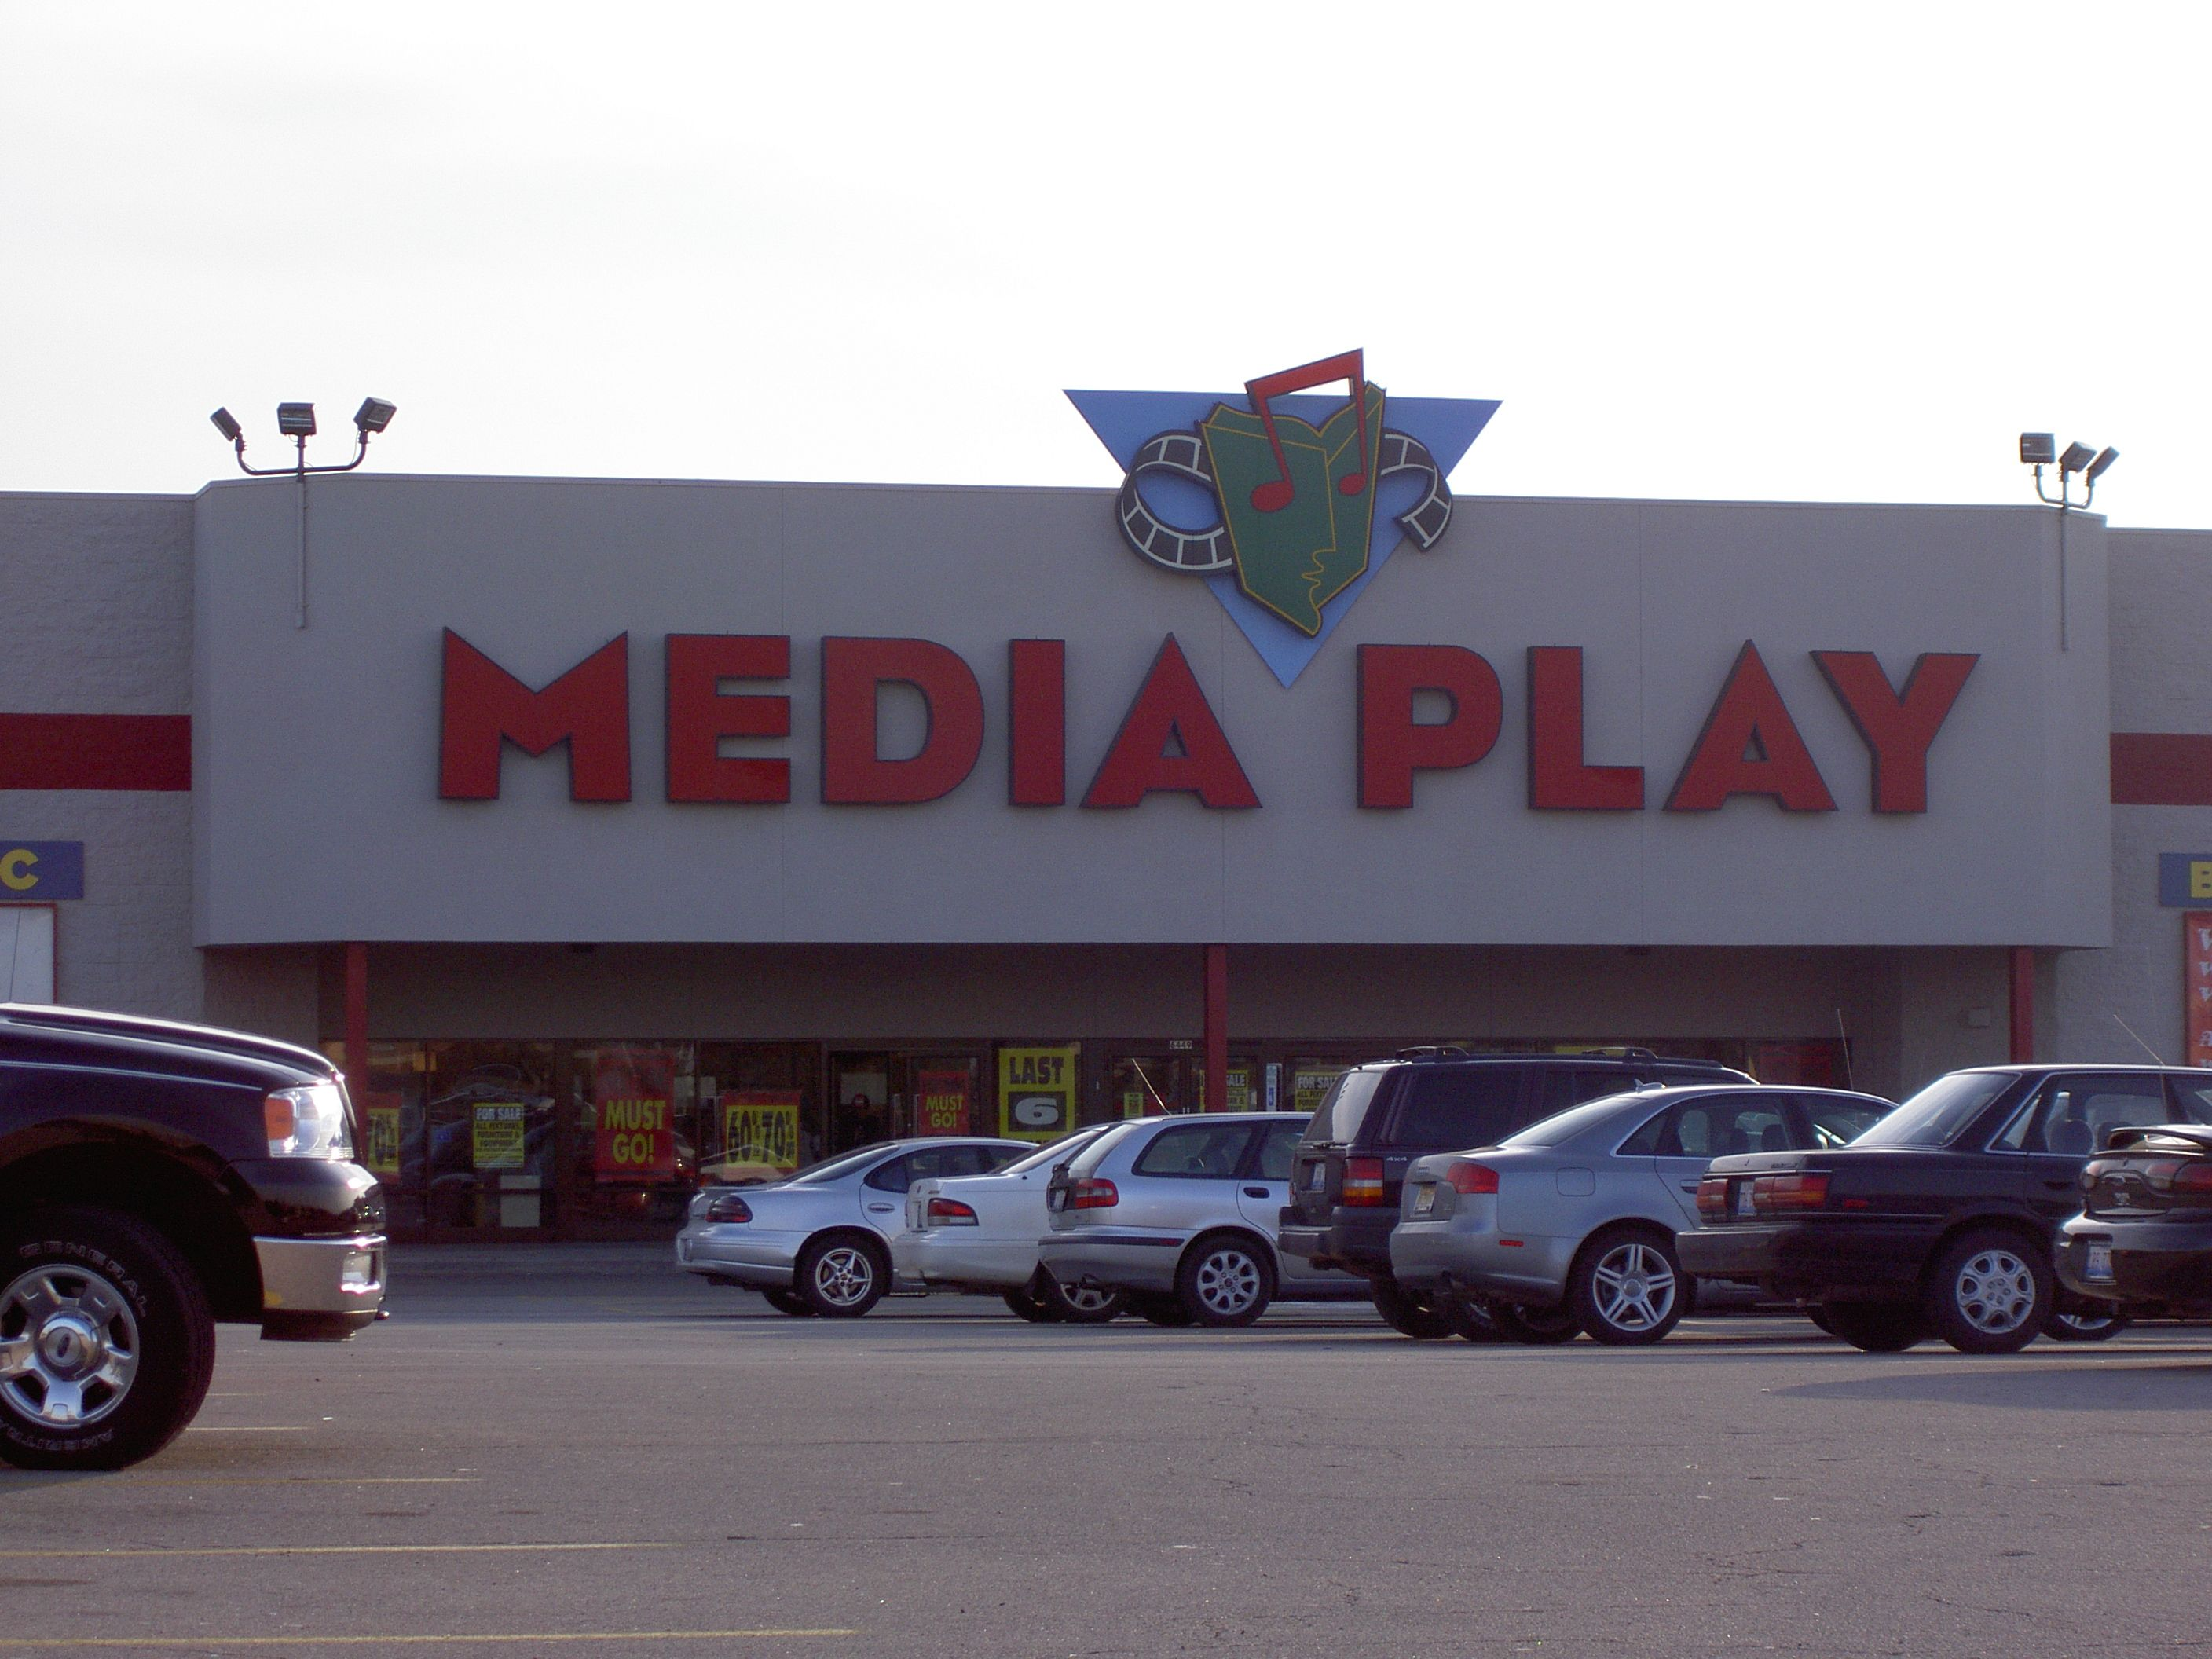 Media Play store in Rockford, Illinois